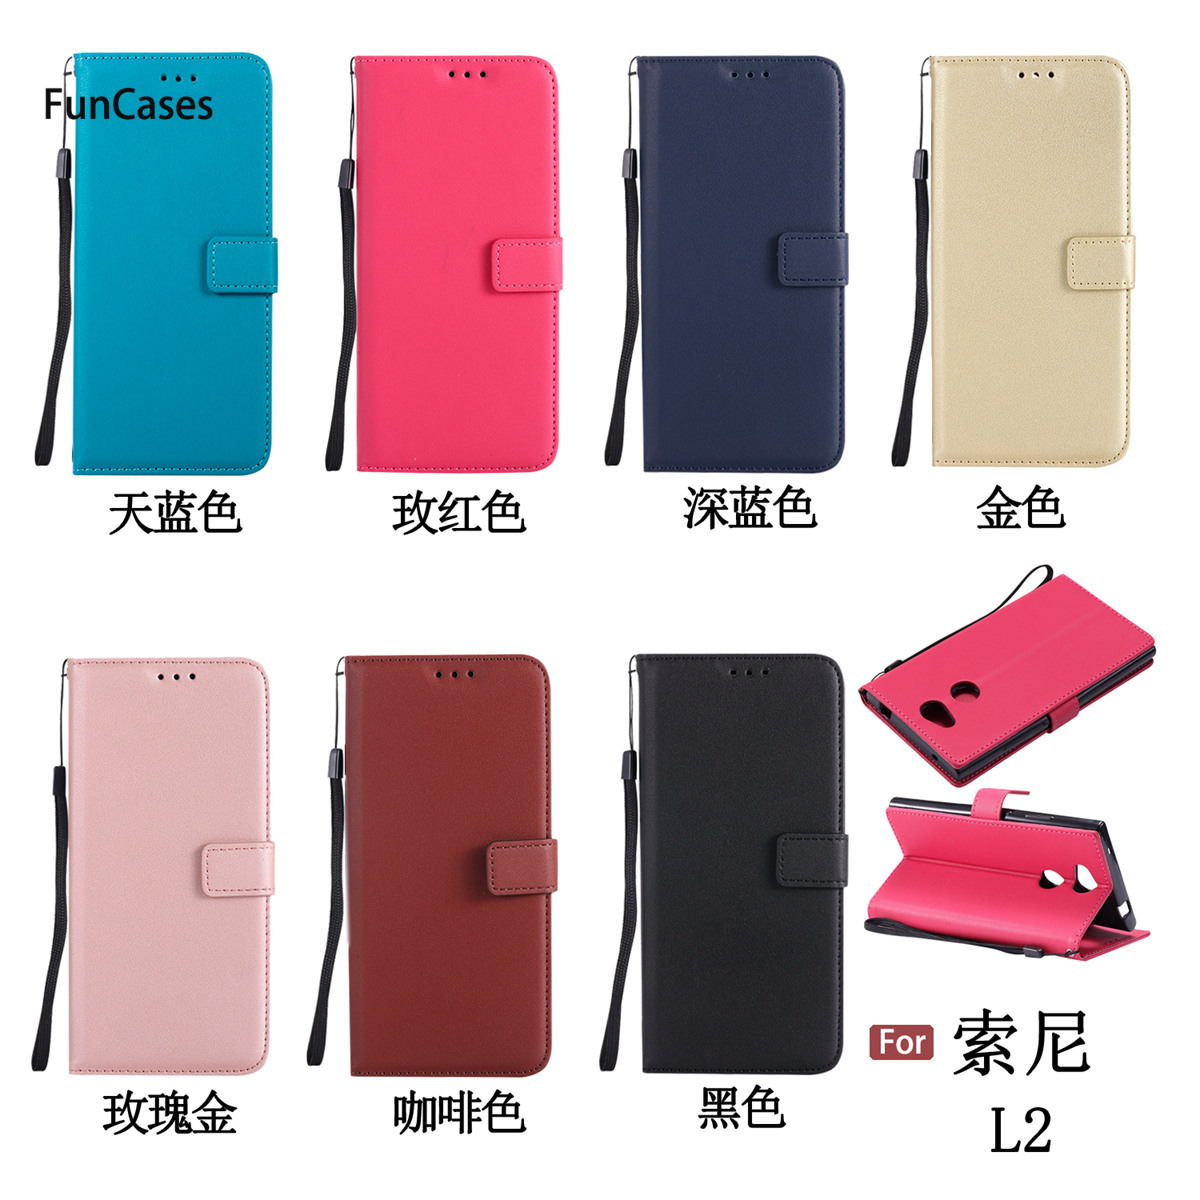 Newest PU Leather Case sFor Estojo Sony L2 Holsters Clips Case Portable Cute Flip Case For Sony <font><b>Xperia</b></font> L2 Casca Capinha Bag